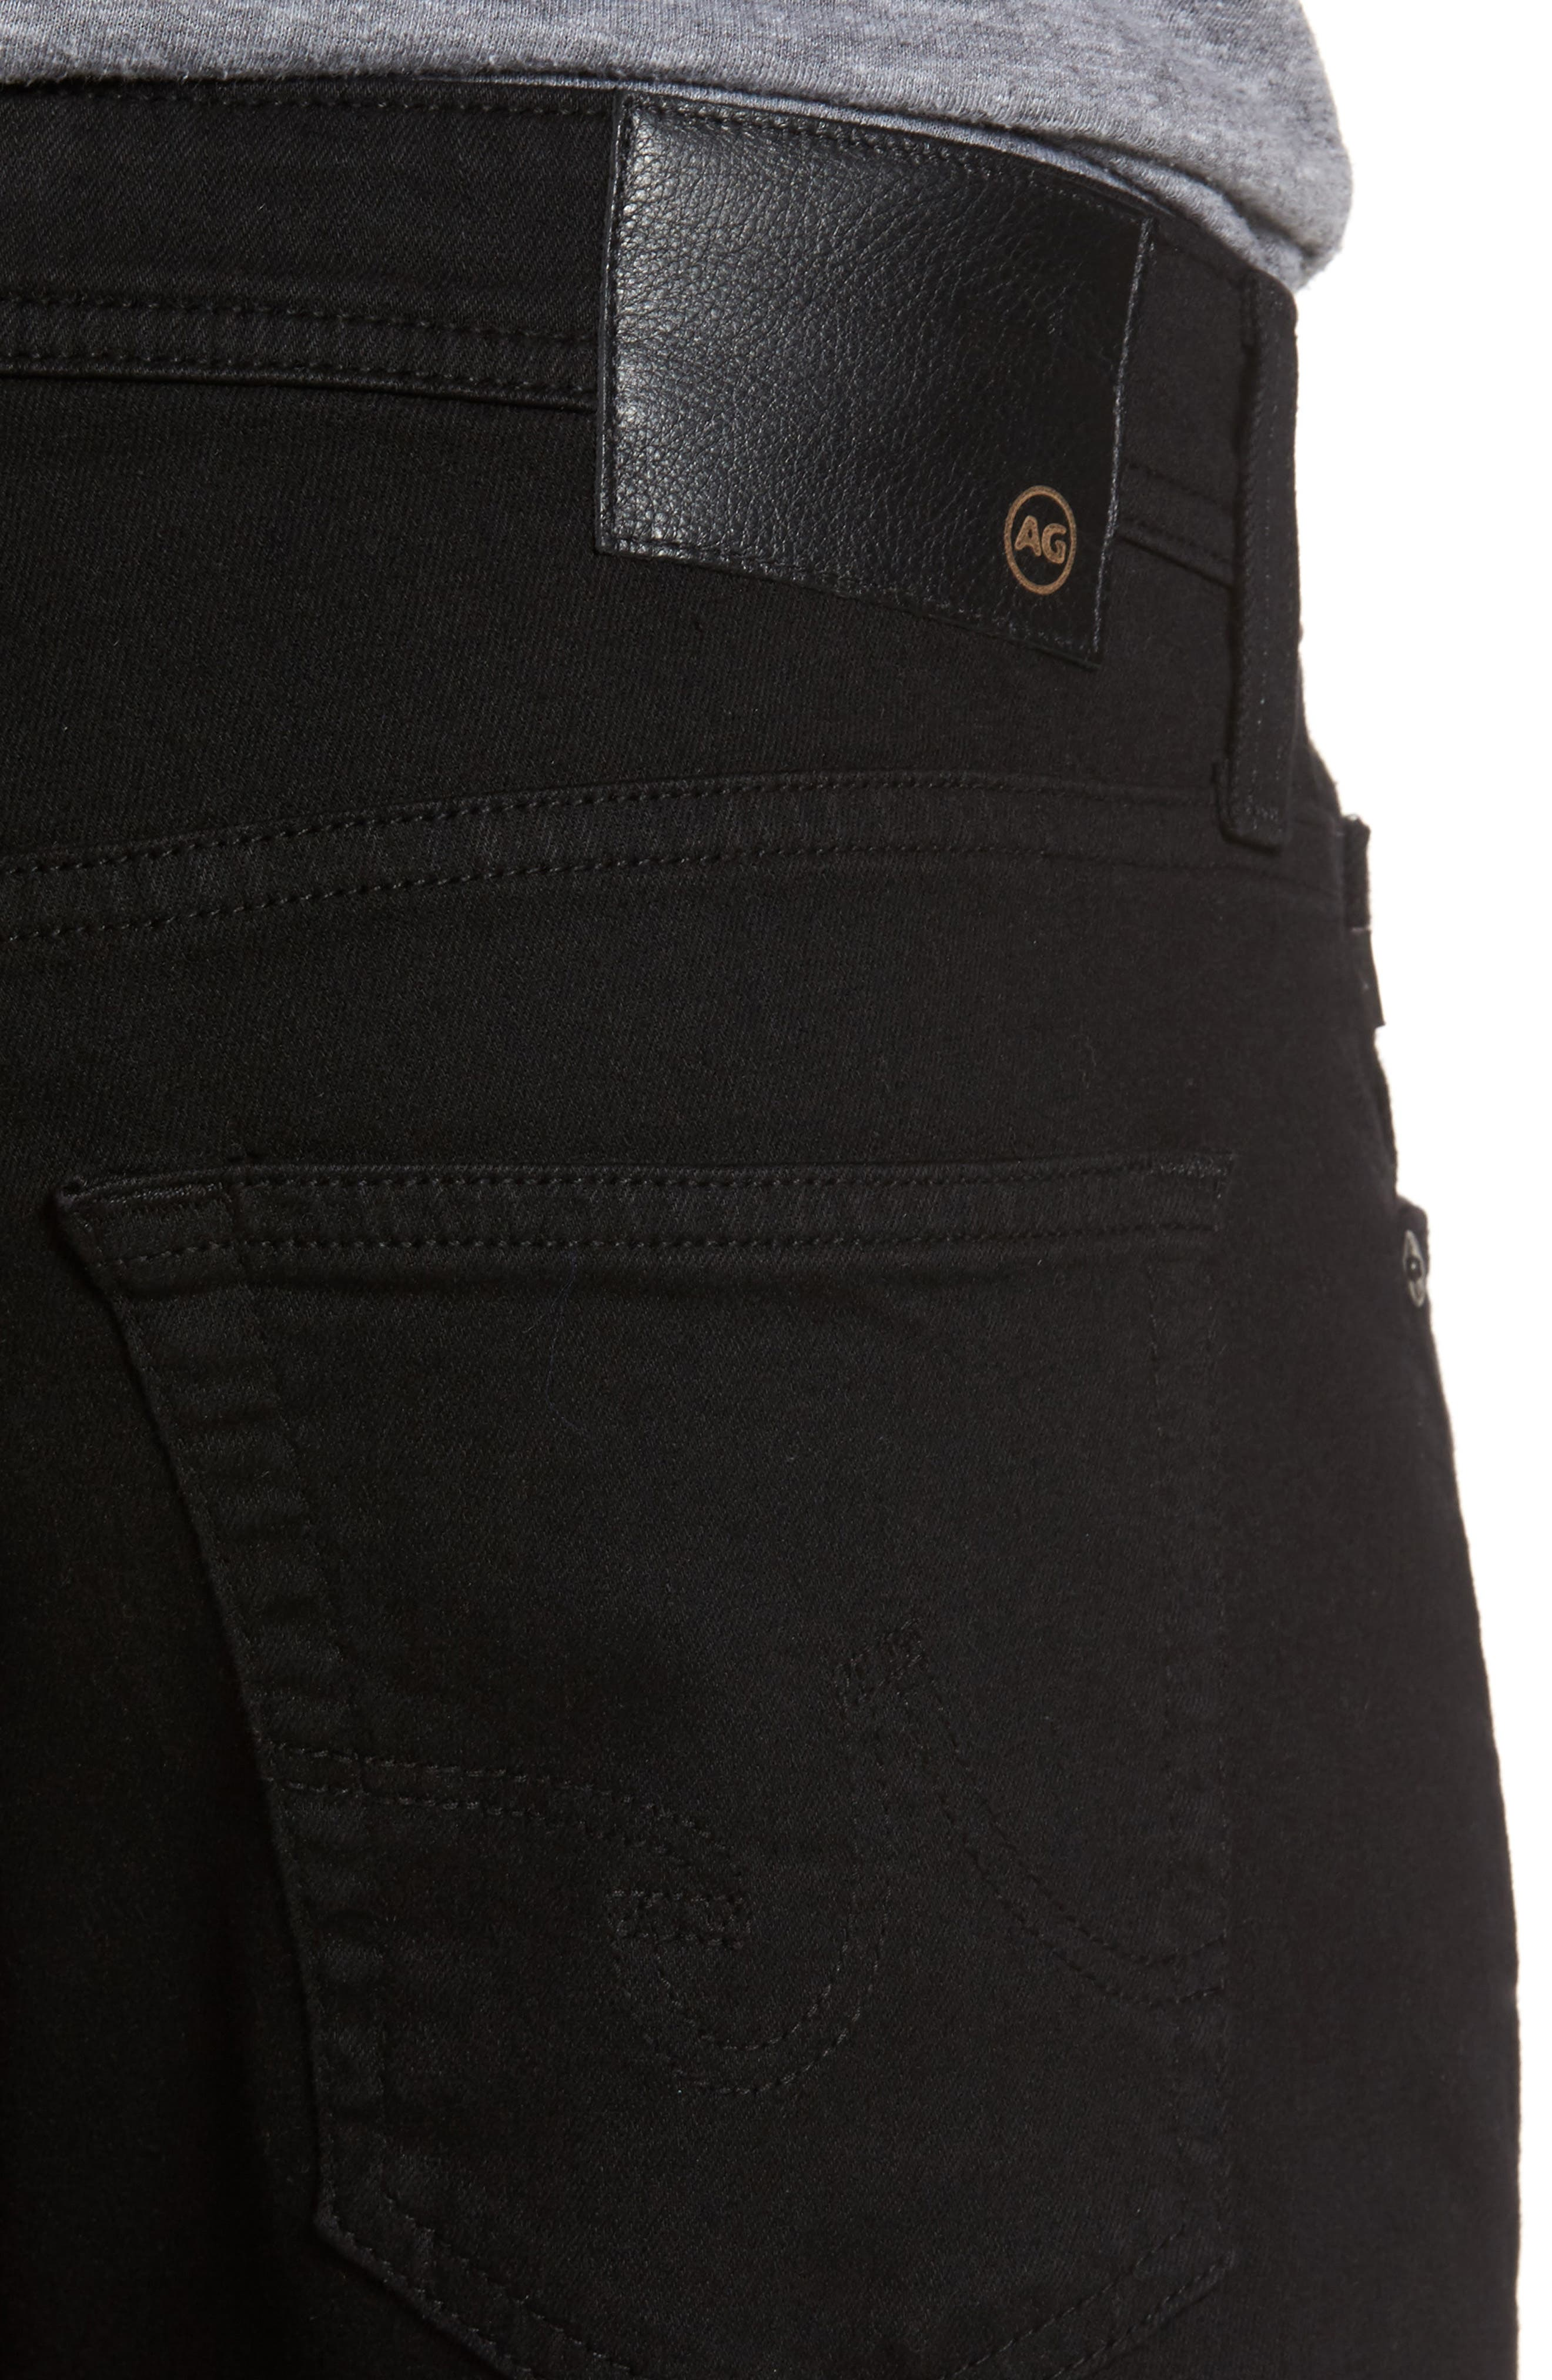 Everett Slim Straight Fit Jeans,                             Alternate thumbnail 4, color,                             Black Soot